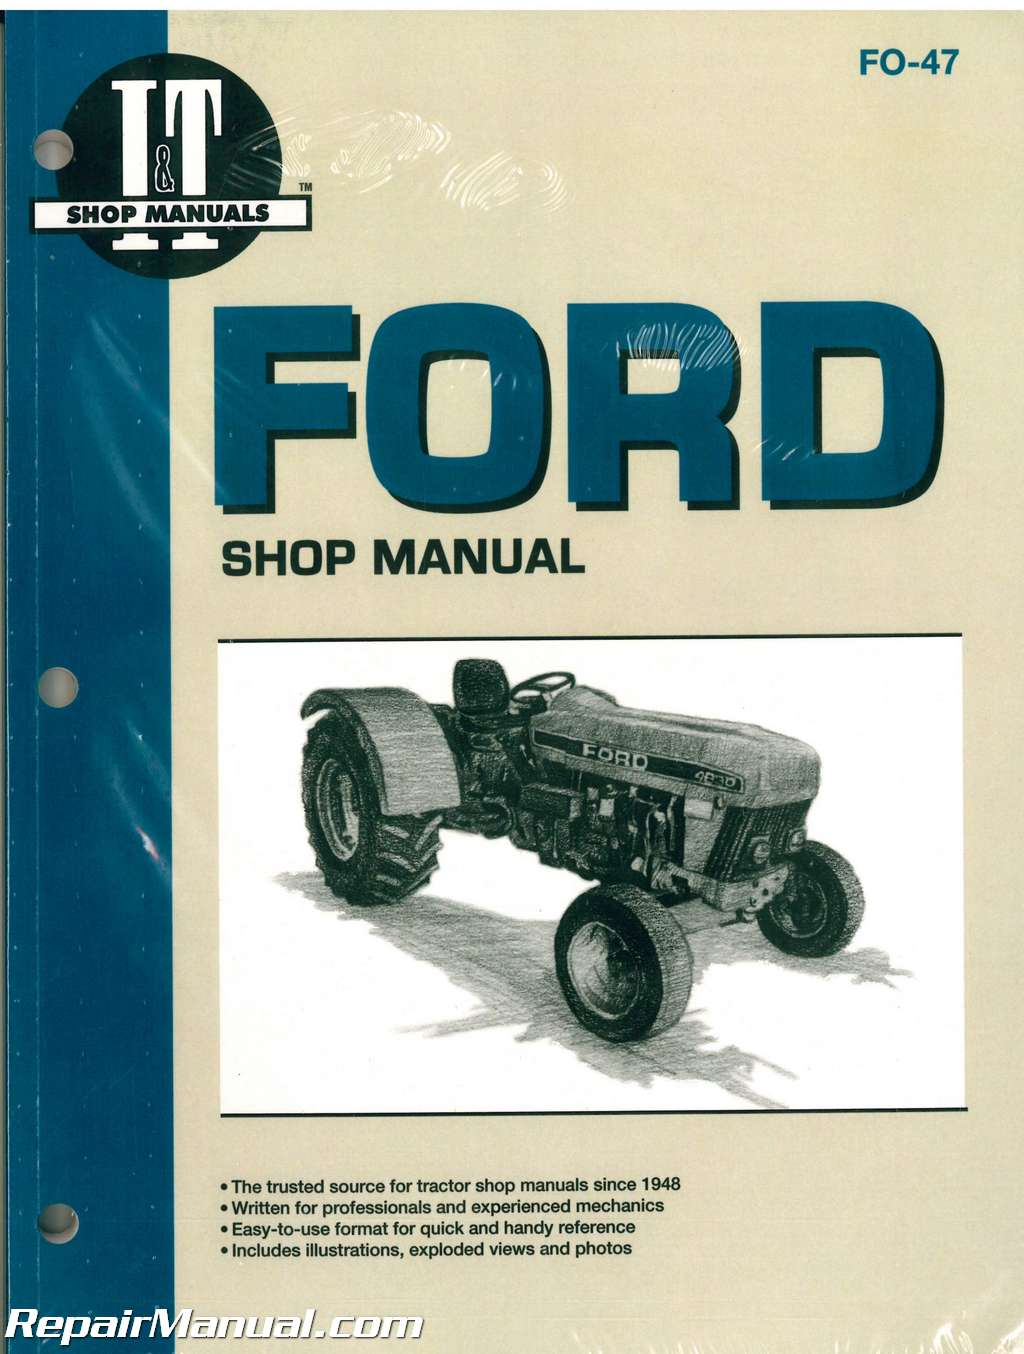 wiring diagram for 3930 ford tractor the wiring diagram ford 4630 tractor wiring diagram nilza wiring diagram